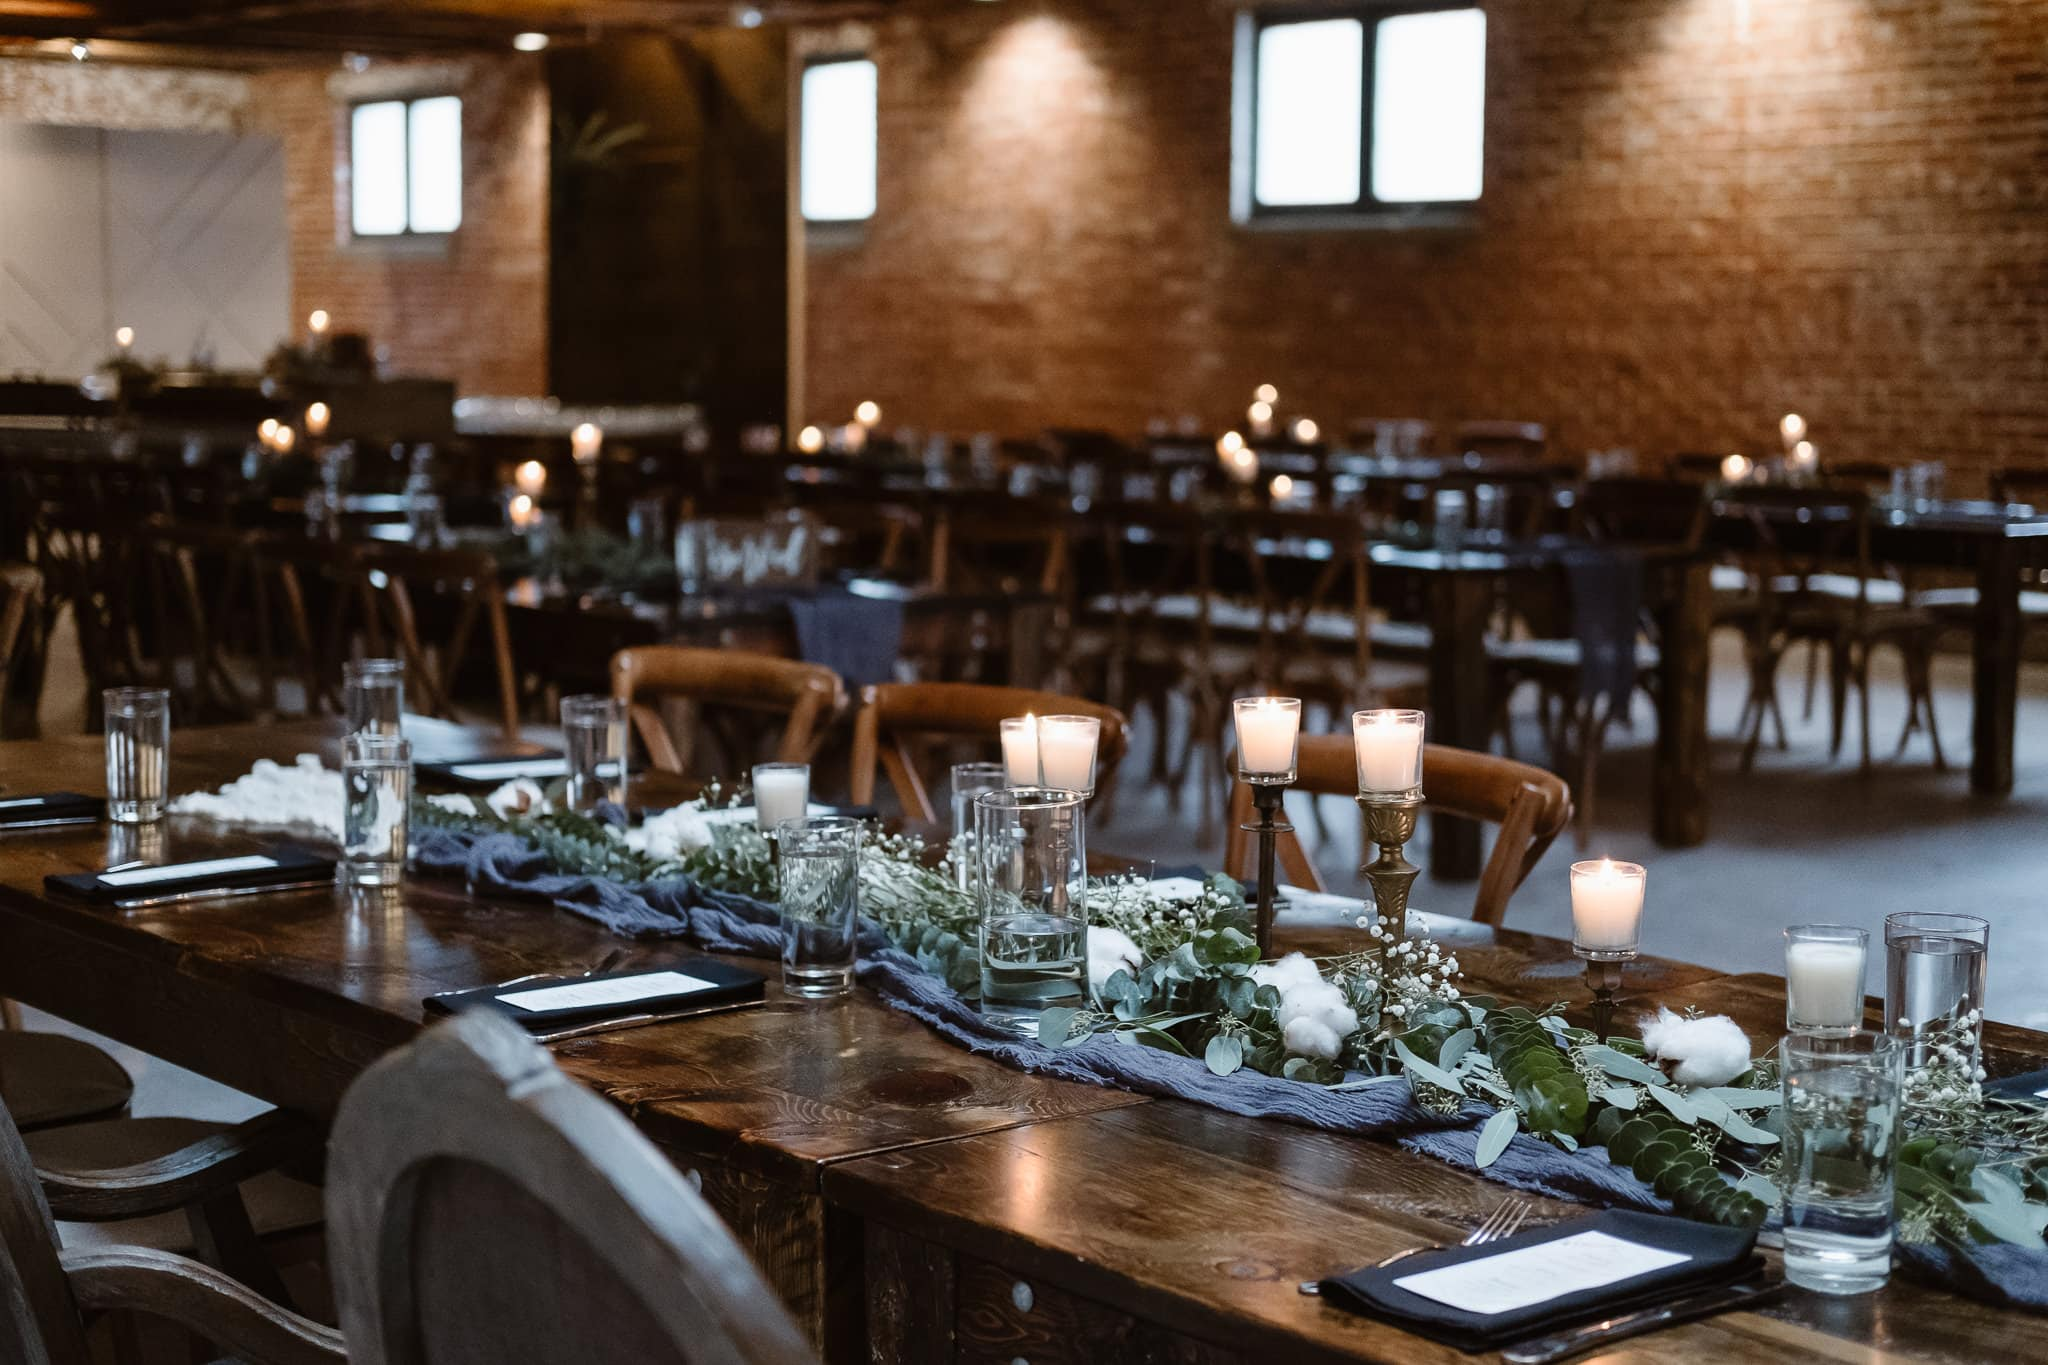 St Vrain Wedding Photographer | Longmont Wedding Photographer | Colorado Winter Wedding Photographer, Colorado industrial chic wedding ceremony, reception decor with navy and dark wood, planning by Brindle + Oak